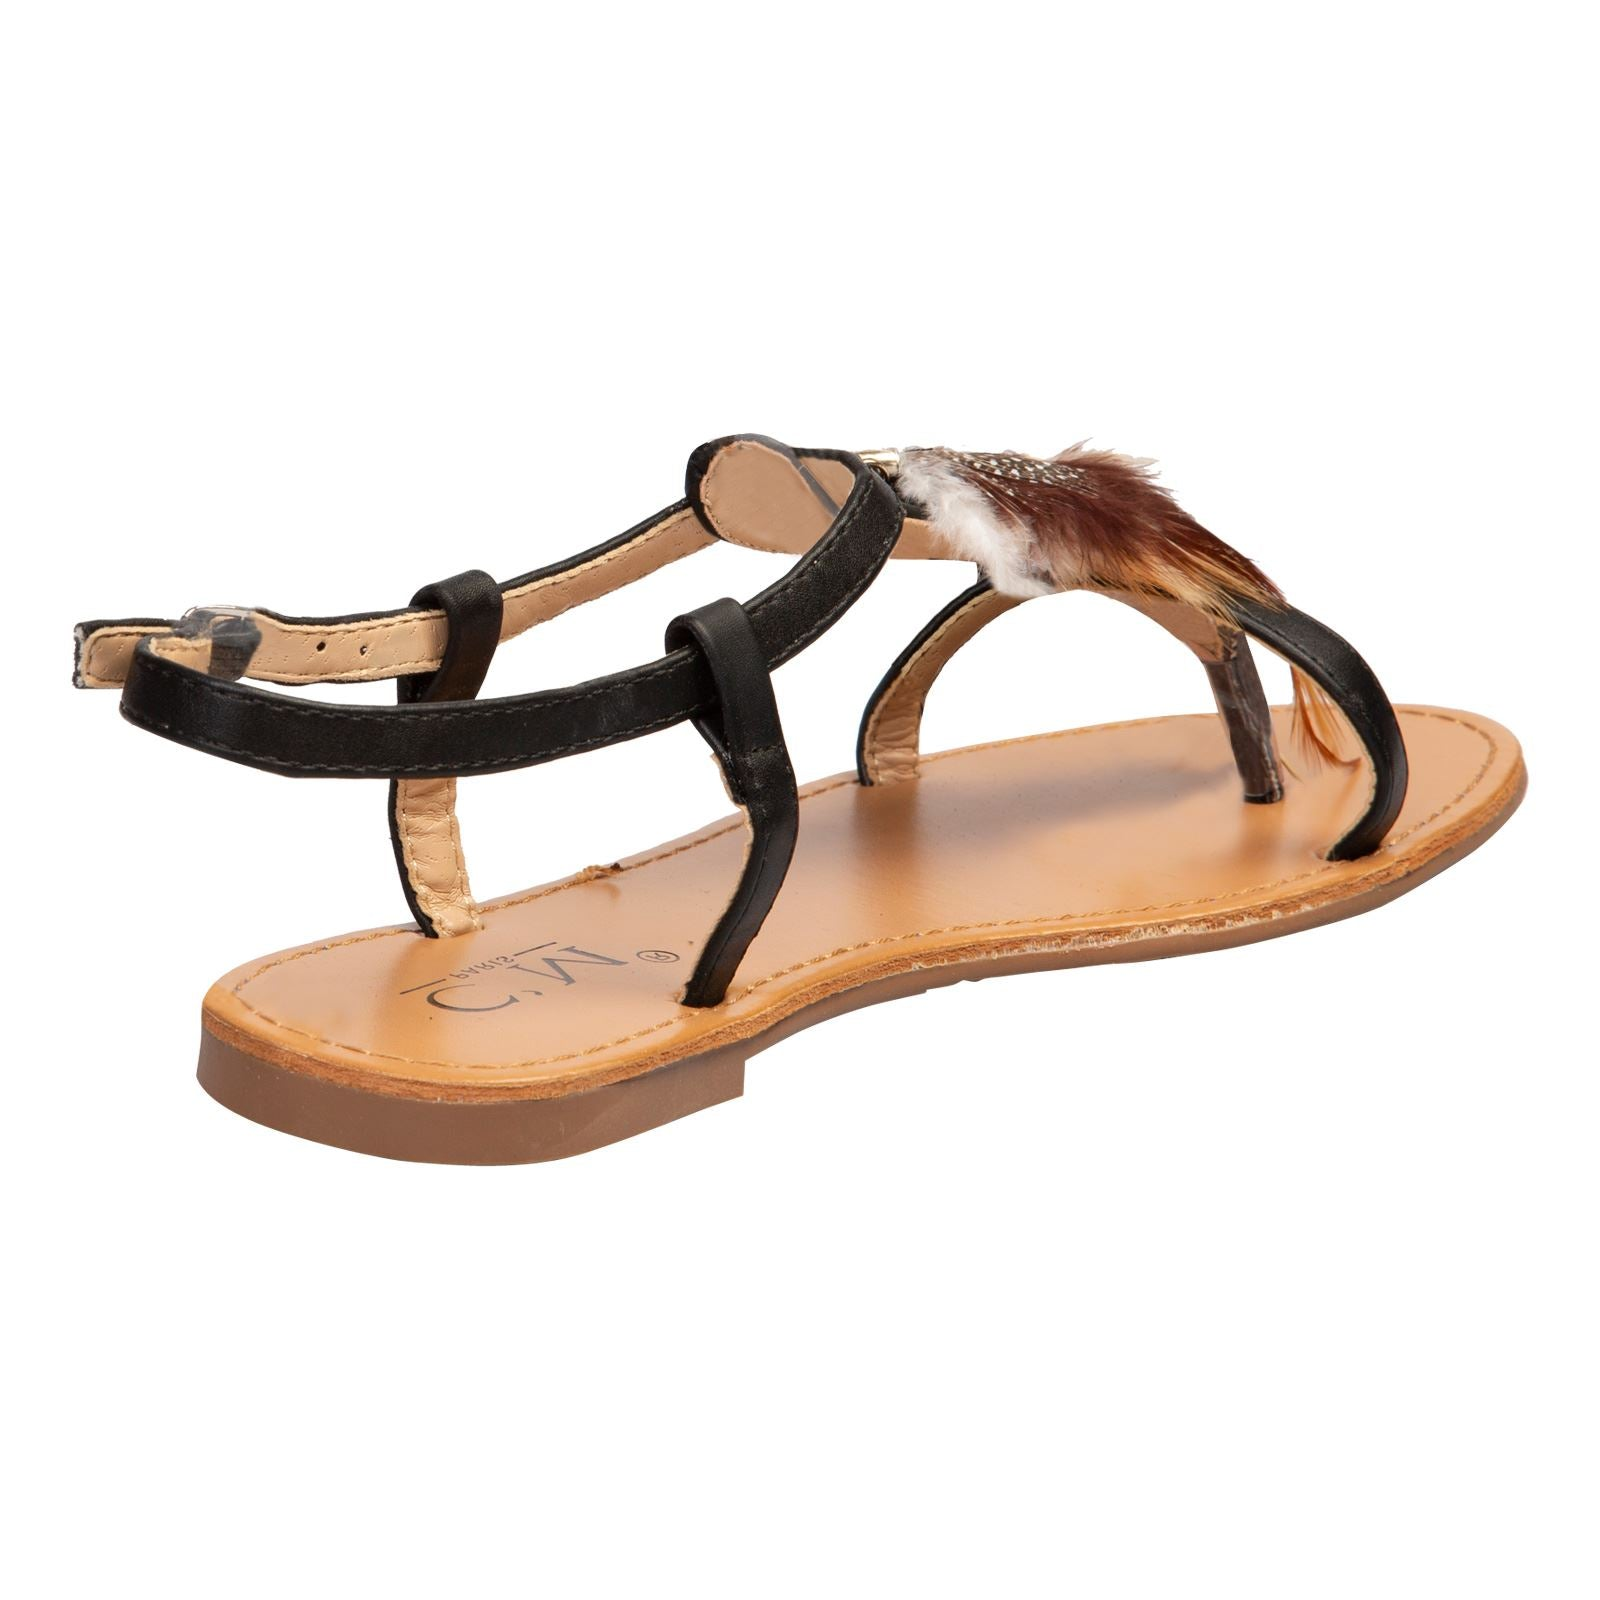 Kinsley Feather Toe Post Sandals in Black Faux Leather - Feet First Fashion